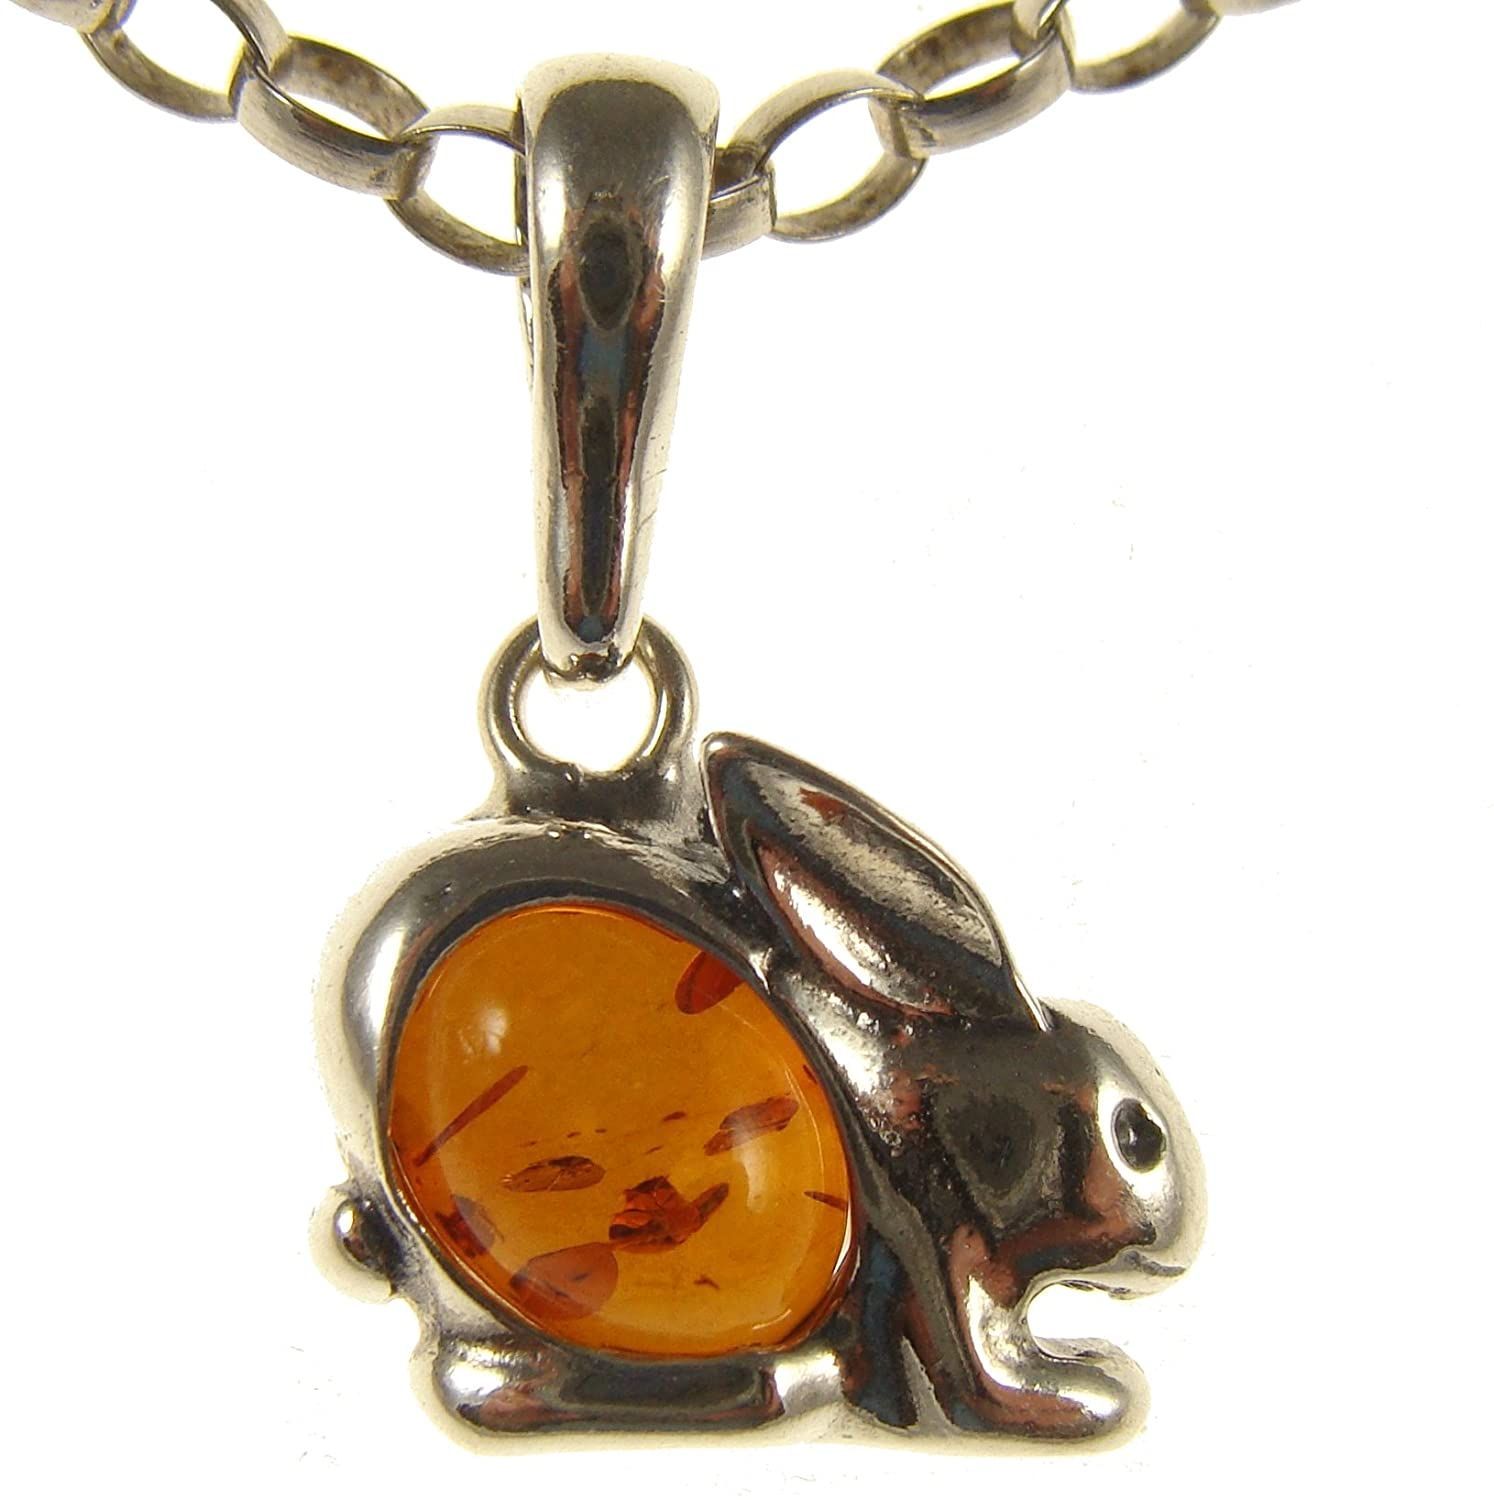 14 16 18 20 22 24 26 28 30 32 34 1mm ITALIAN SNAKE CHAIN BALTIC AMBER AND STERLING SILVER 925 RABBIT PENDANT NECKLACE